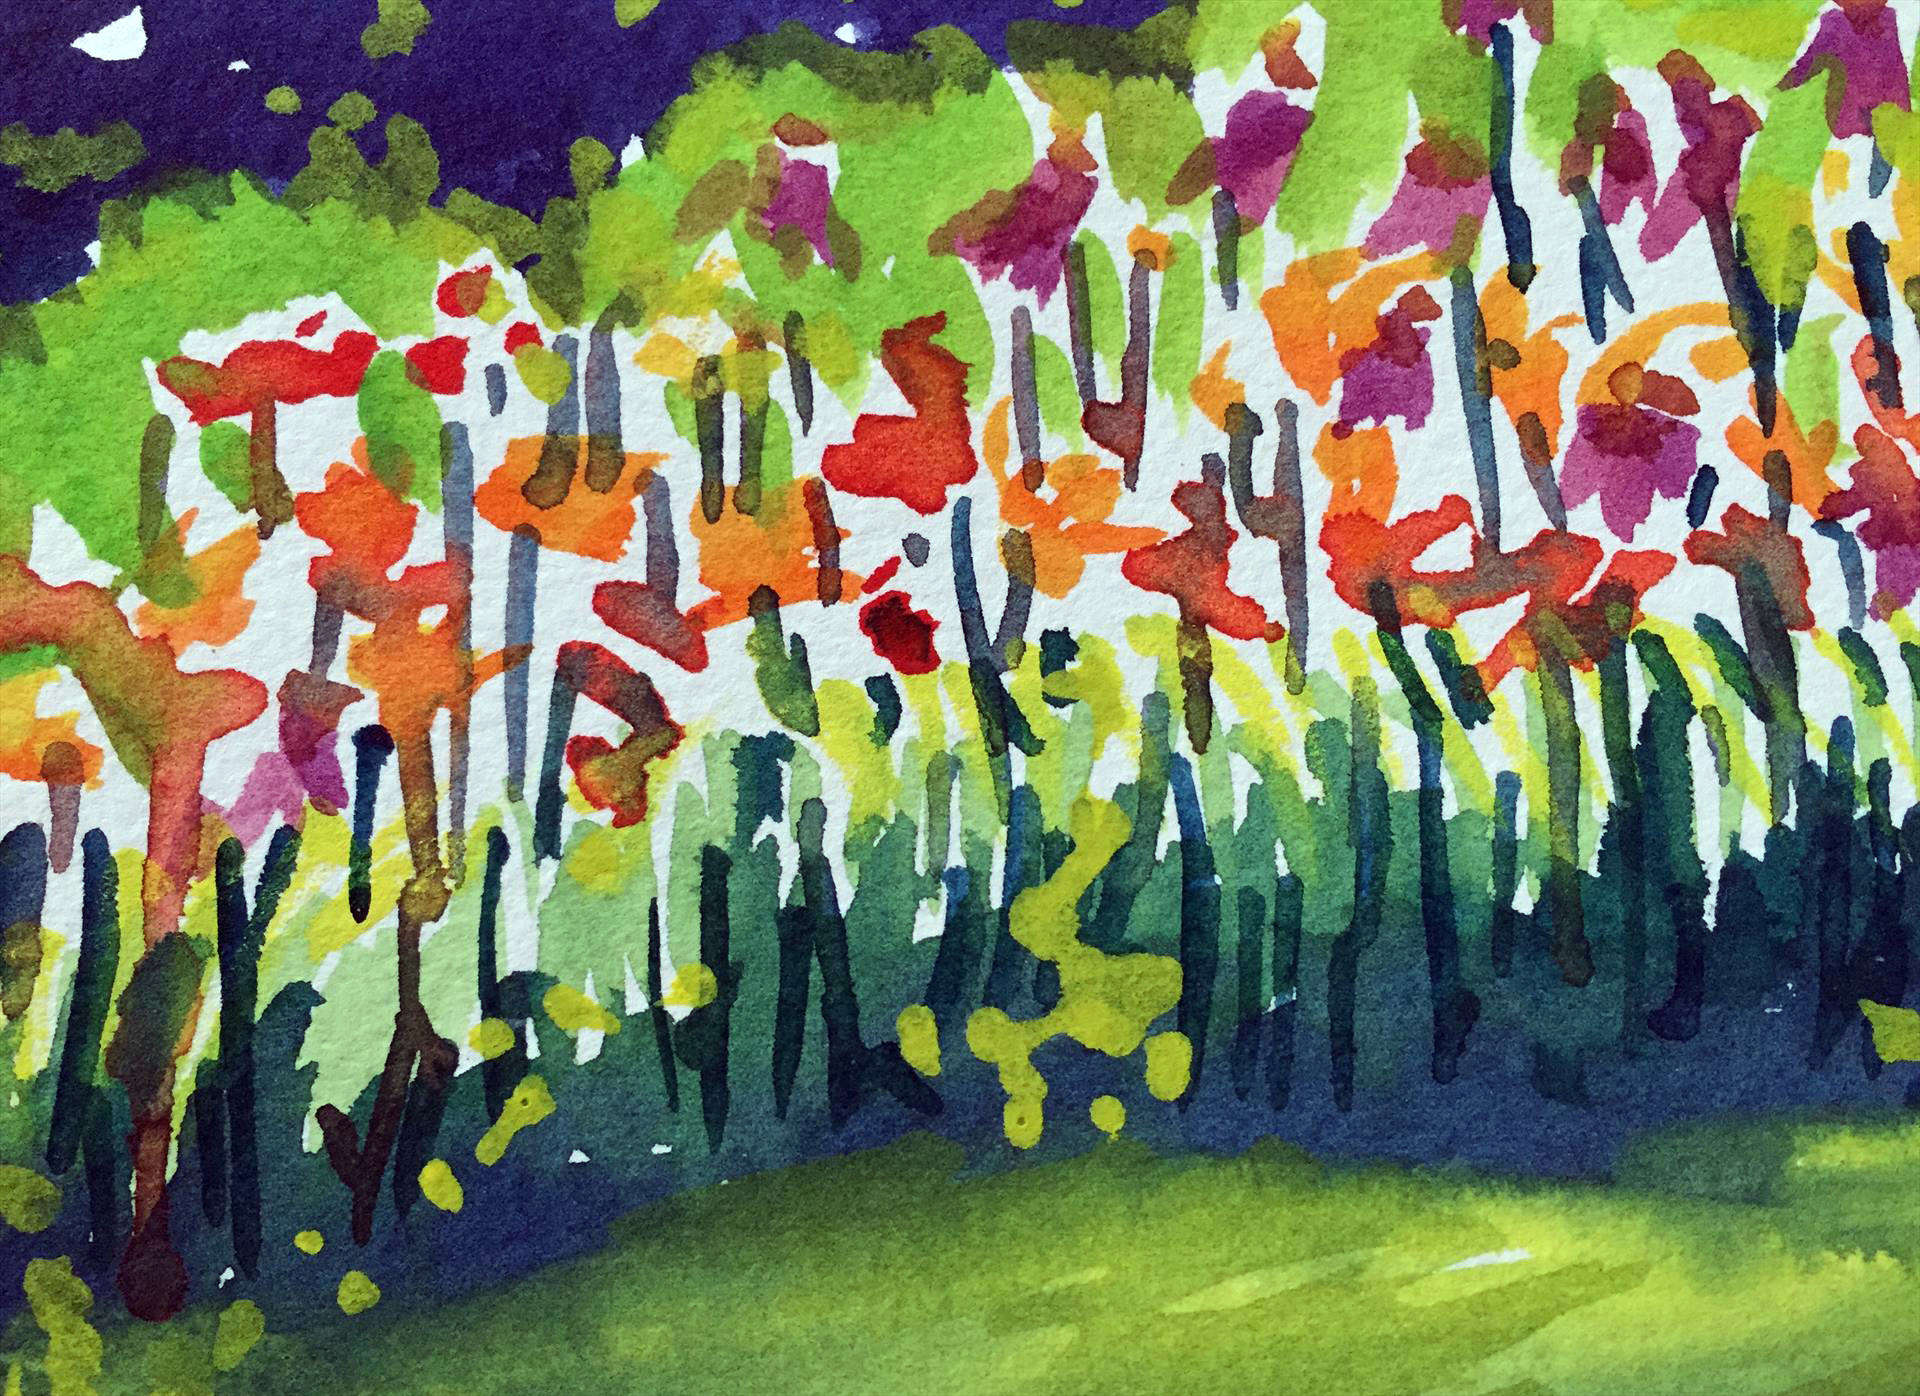 Jane M. Mason | LAUGHING LILIES- CARILLON PARK- DAYTON, OH | watercolor | frame size 10x8